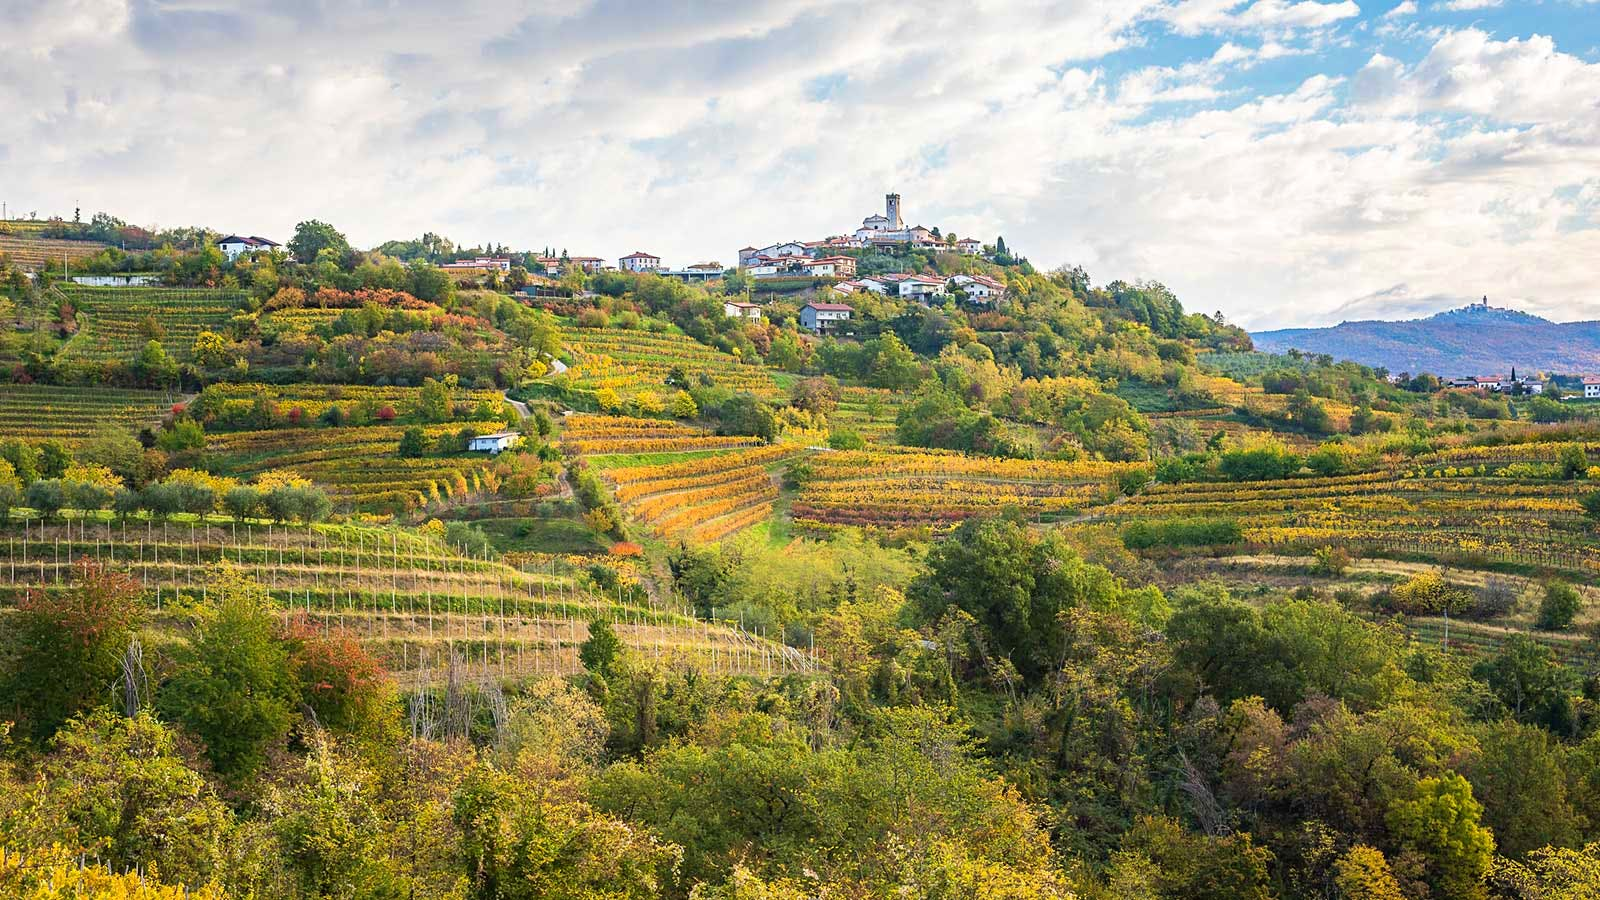 The Next Great Wine Country? It Might Be Slovenia